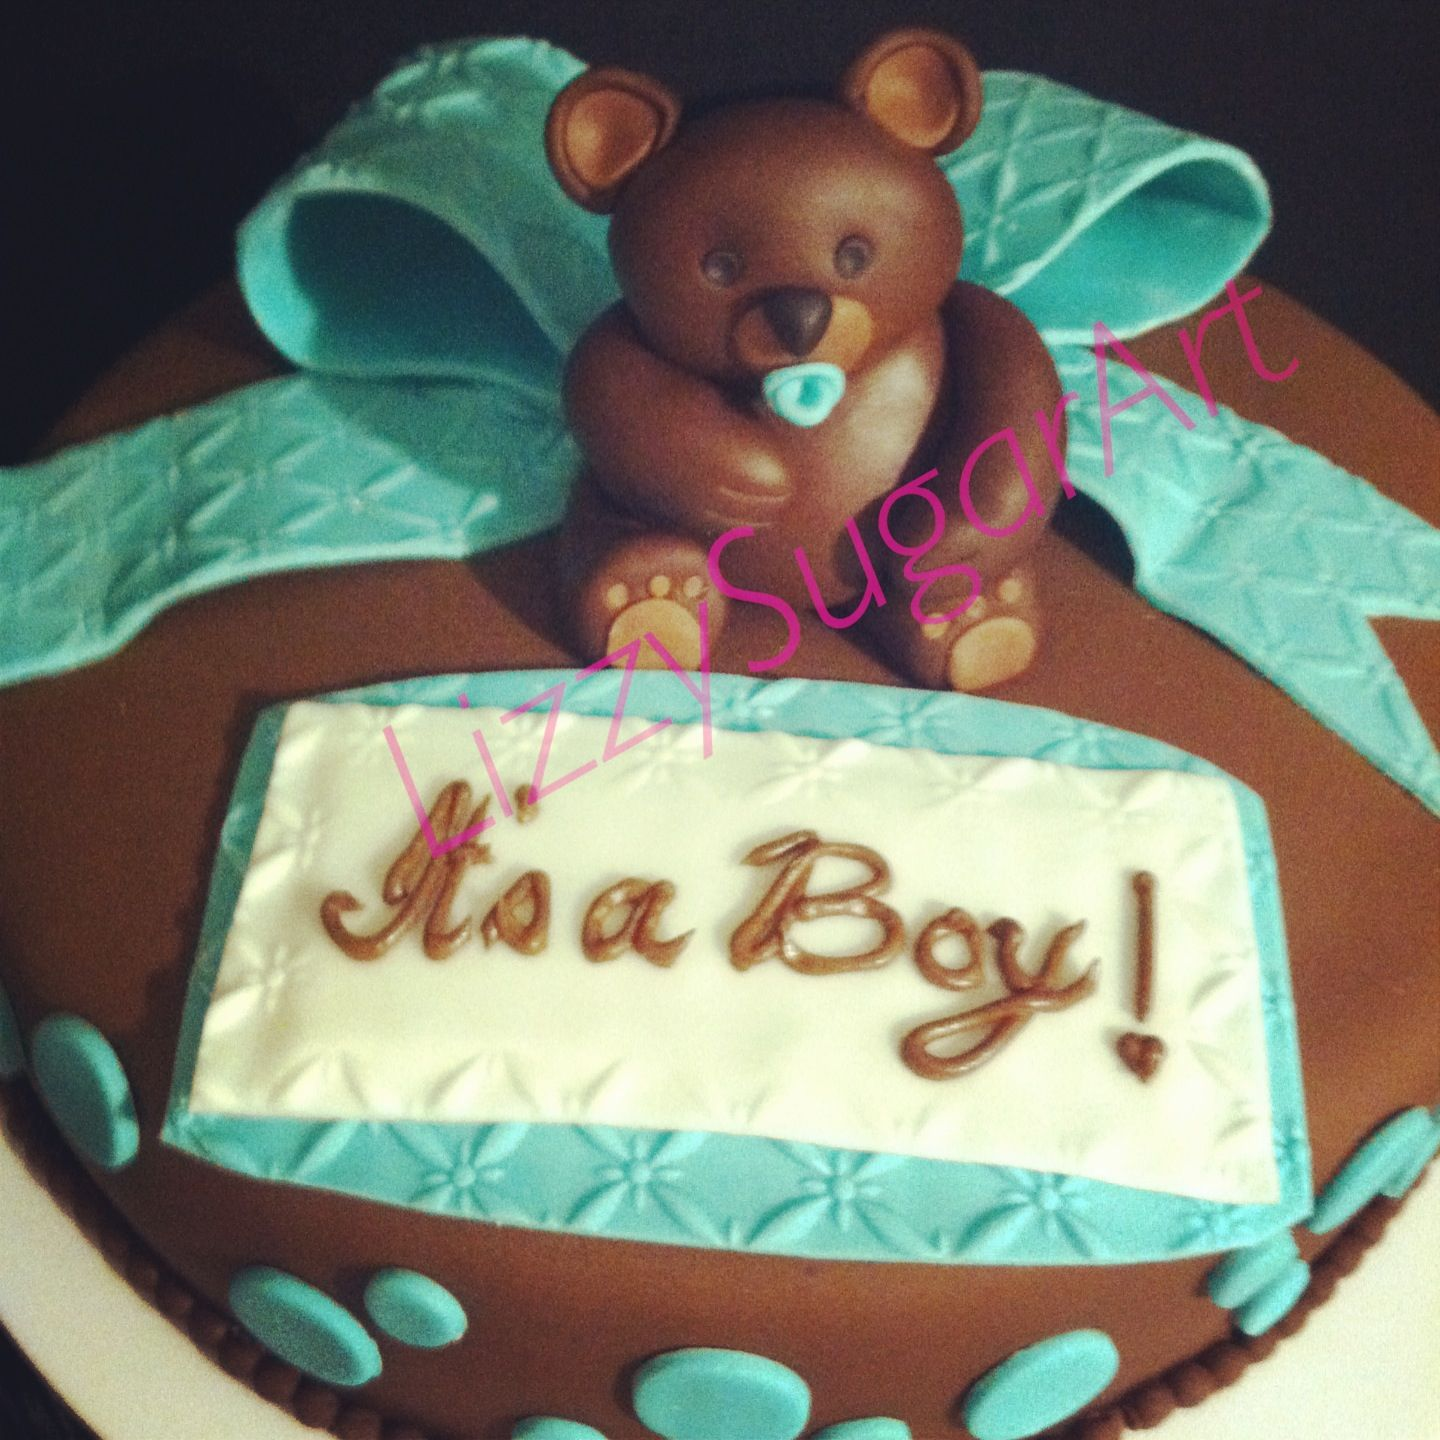 Teddy Bear Theme Baby Shower Cake In Brown And Aqua